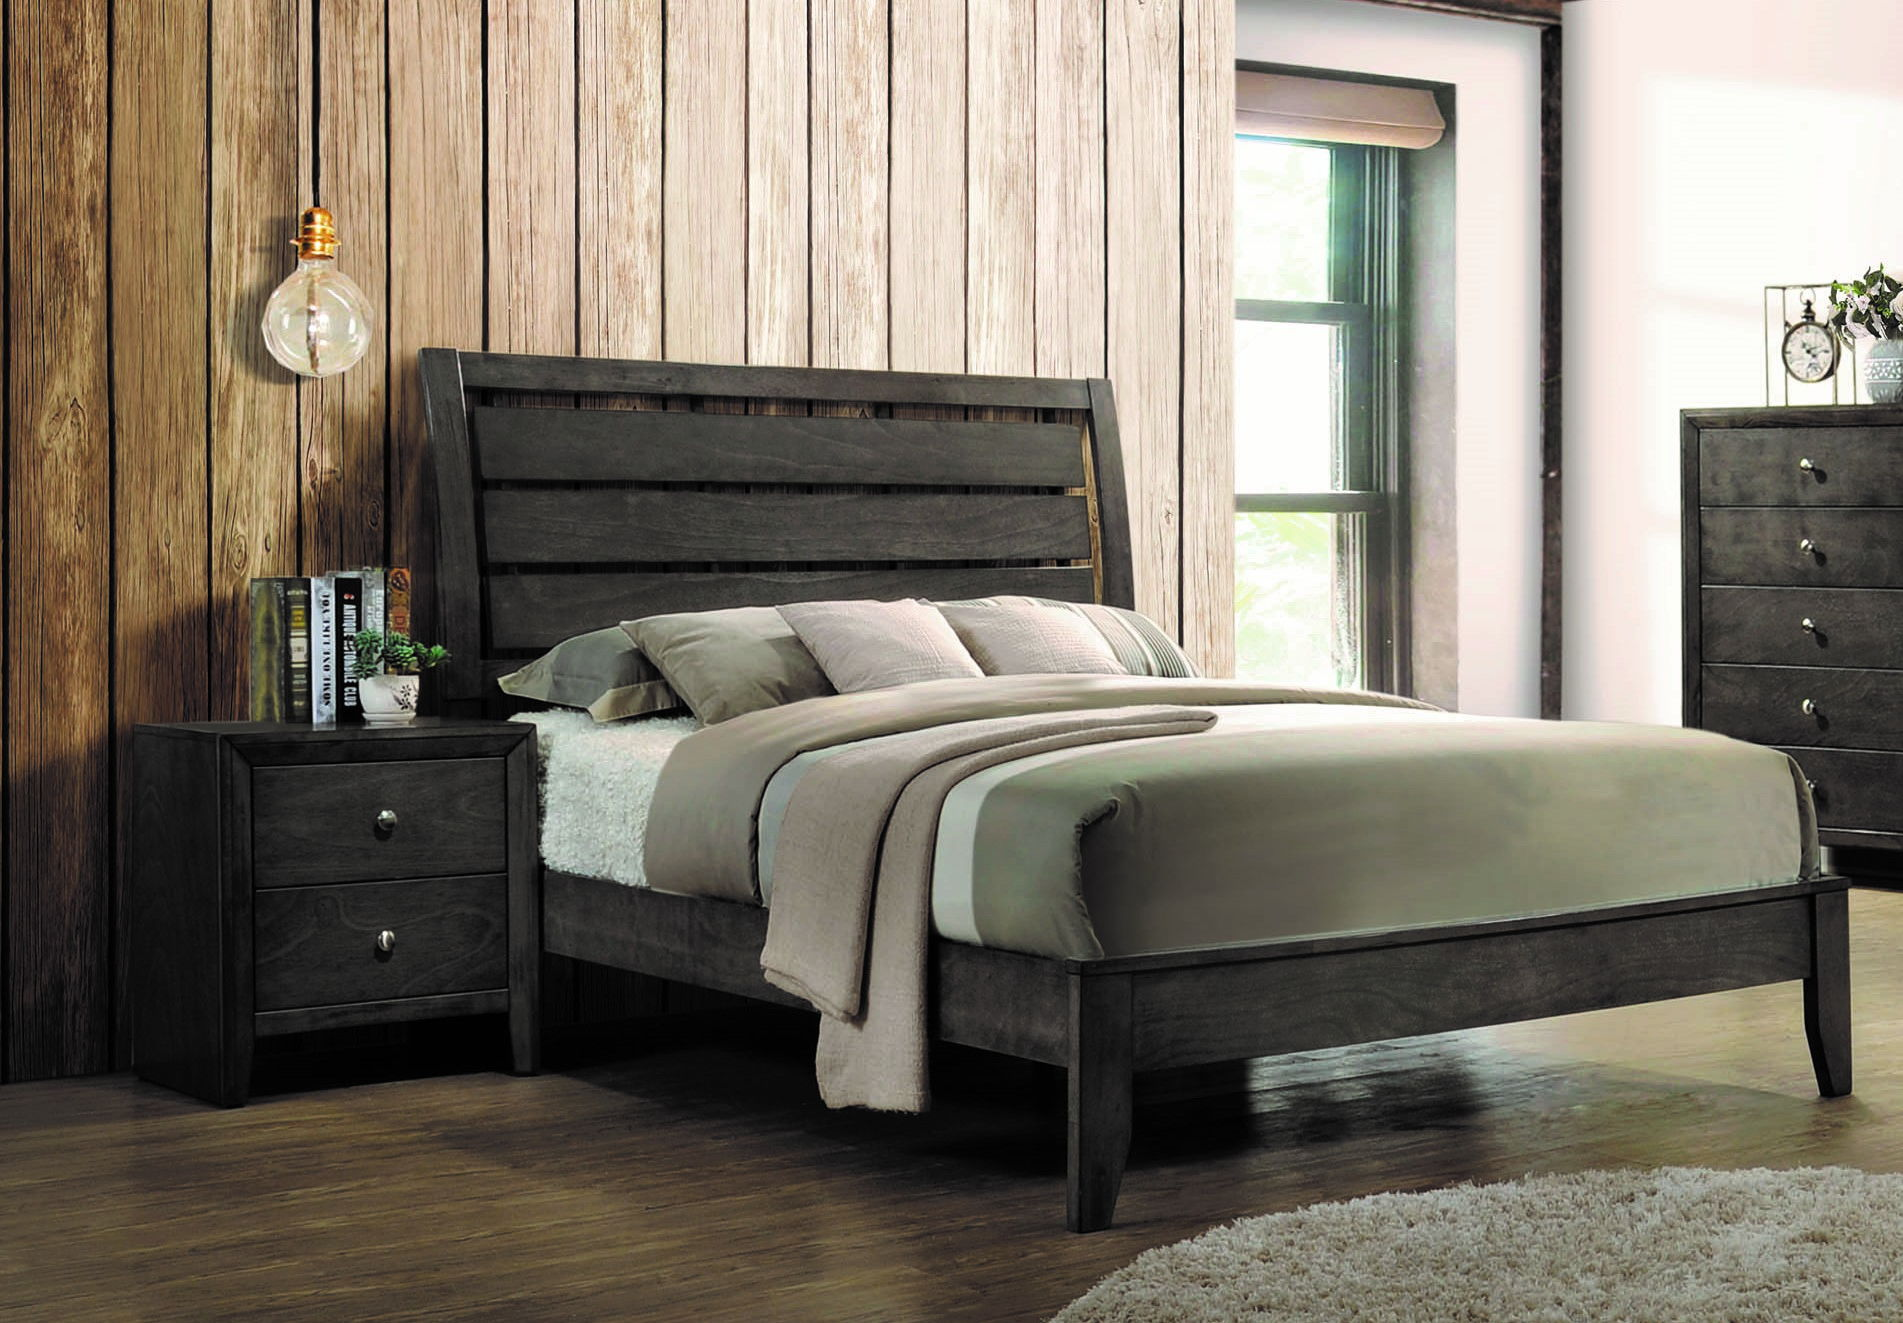 Coaster Furniture Wakefeld Mod Grey 2pc Bedroom Set With King Bed